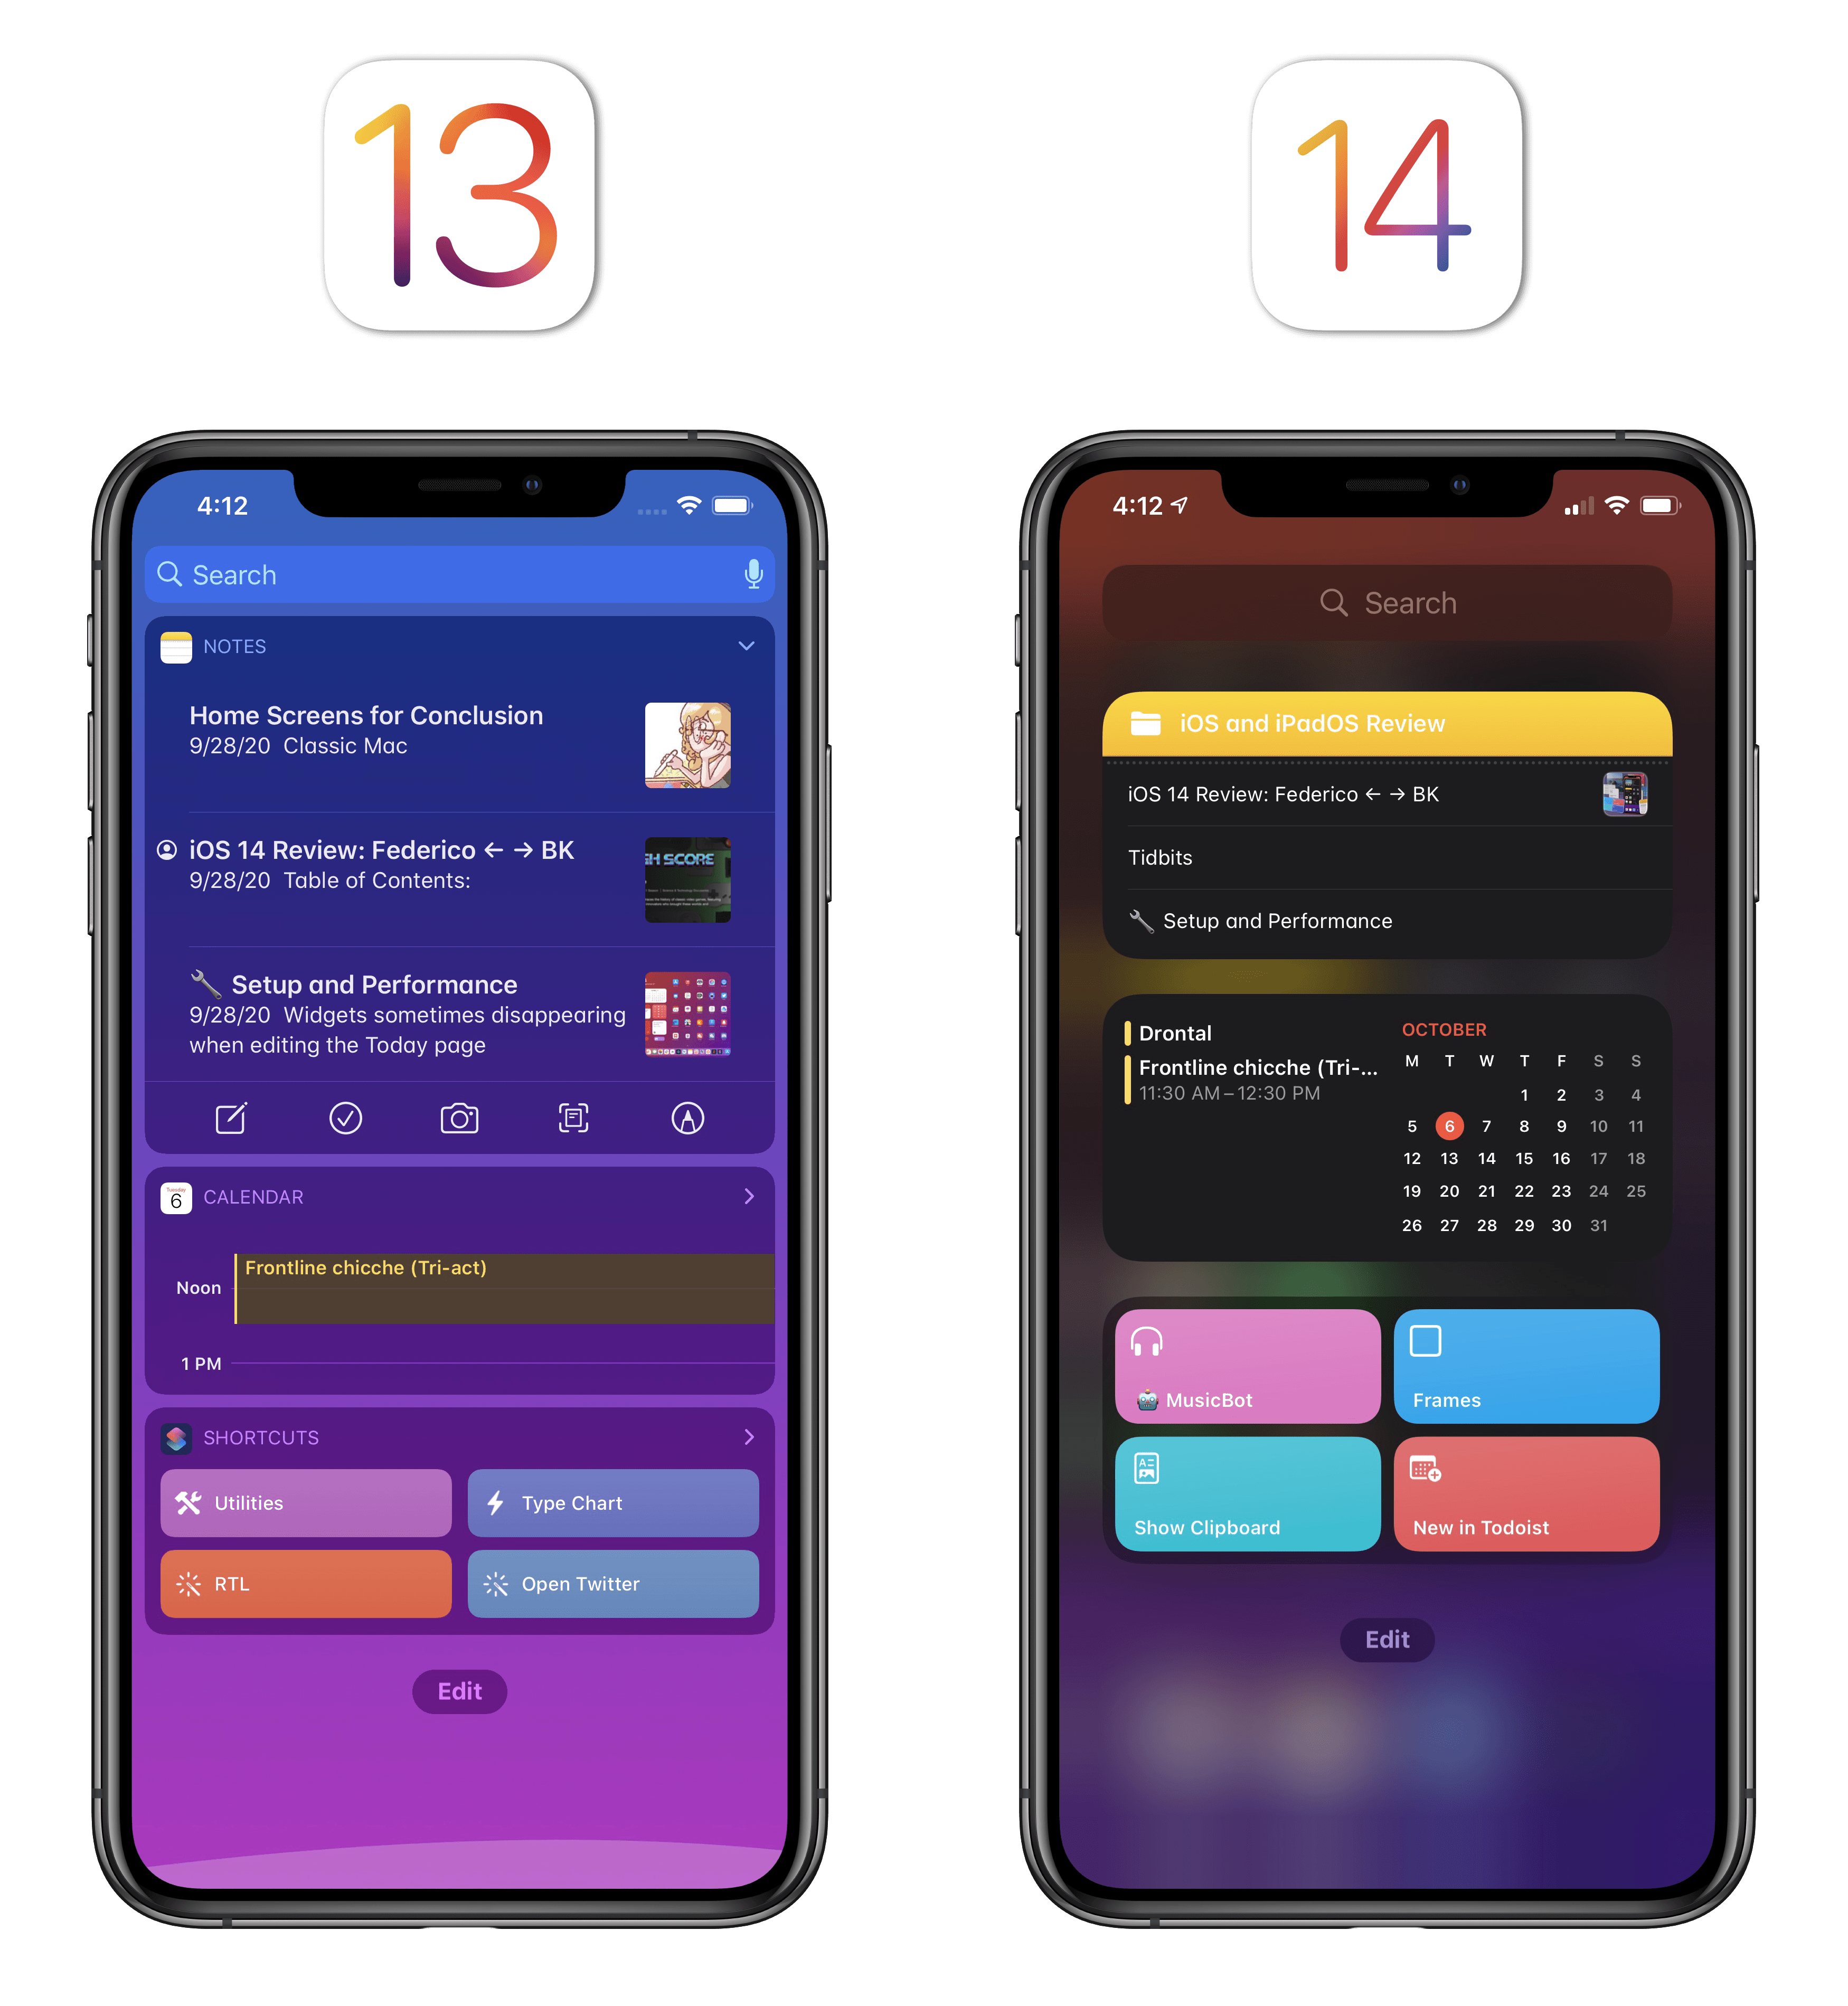 Widgets in iOS 14 can use more complex layouts thanks to SwiftUI.